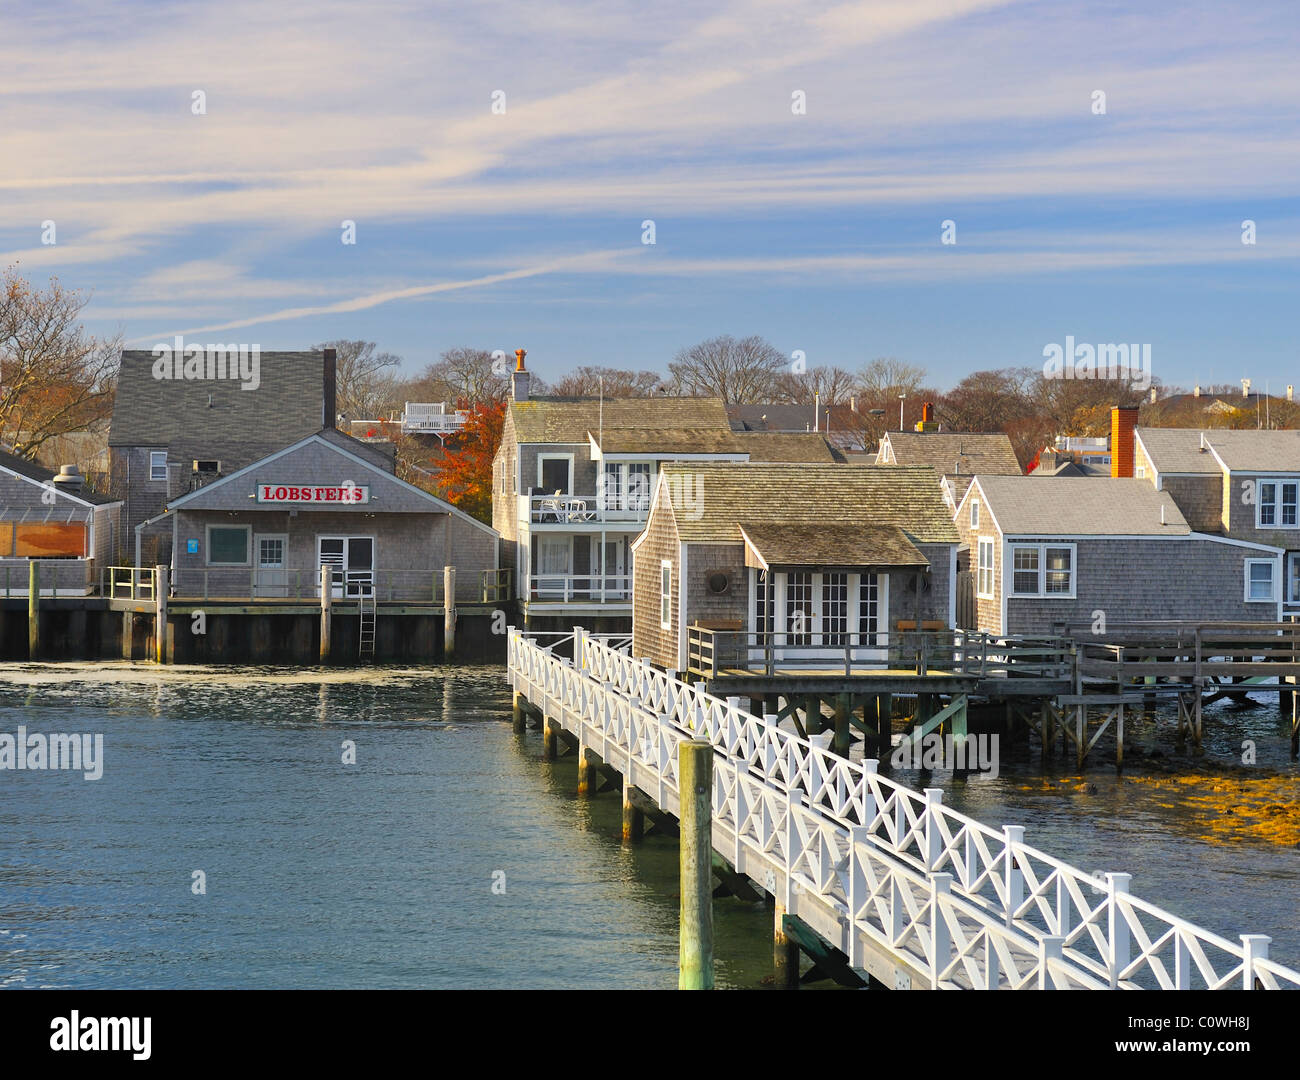 Weitwinkel-Blick auf die Insel von der Fähre, die Ankunft im Hafen von Nantucket in den Herbst, Nantucket, Massachusetts, Stockfoto